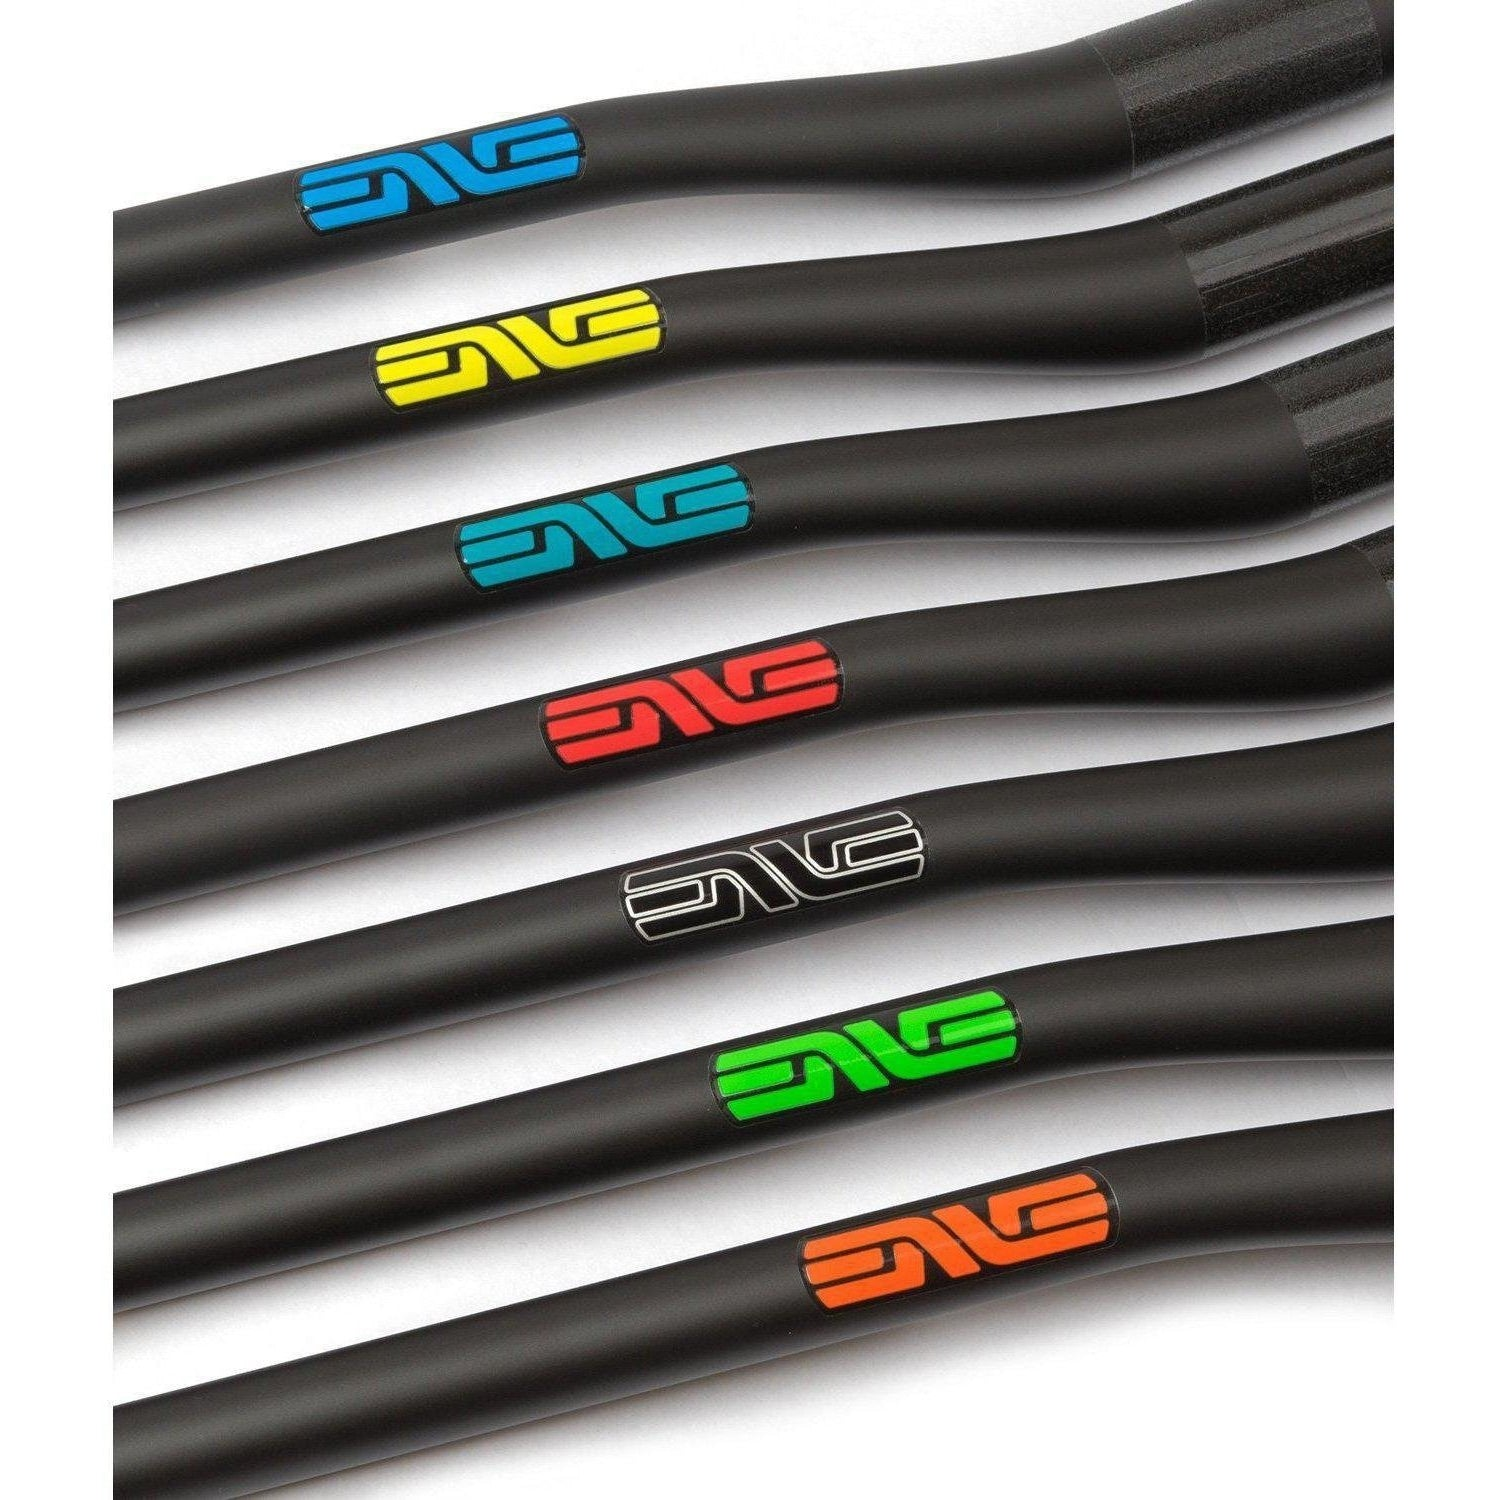 ENVE-ENVE M6 Mountain Handlebar - 31.8mm--saddleback-elite-performance-cycling